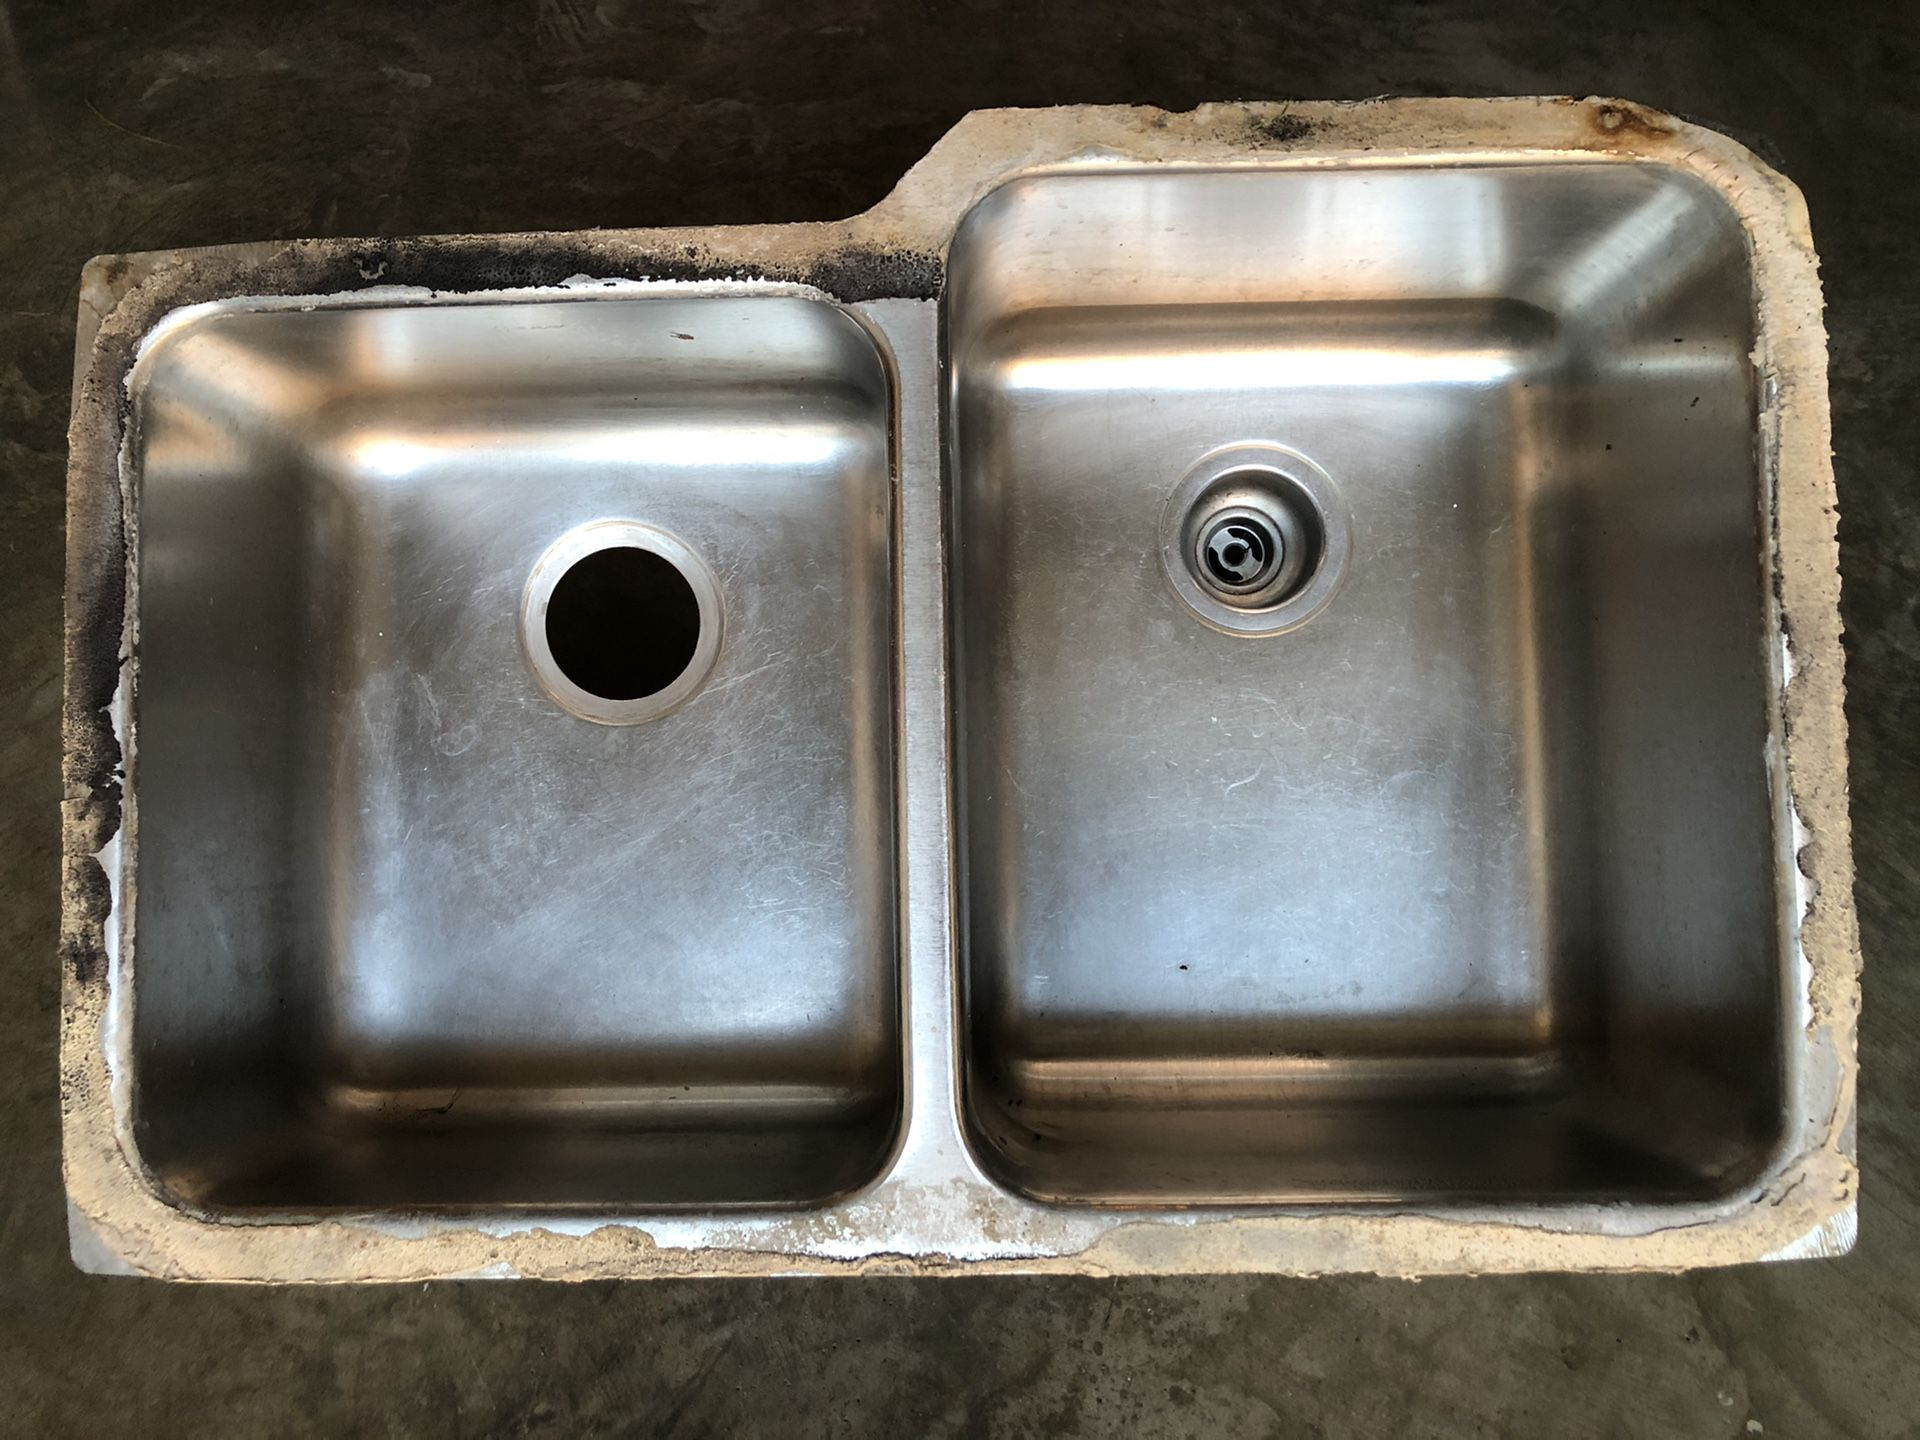 Kitchen Under-Mounted stainless steel double sink